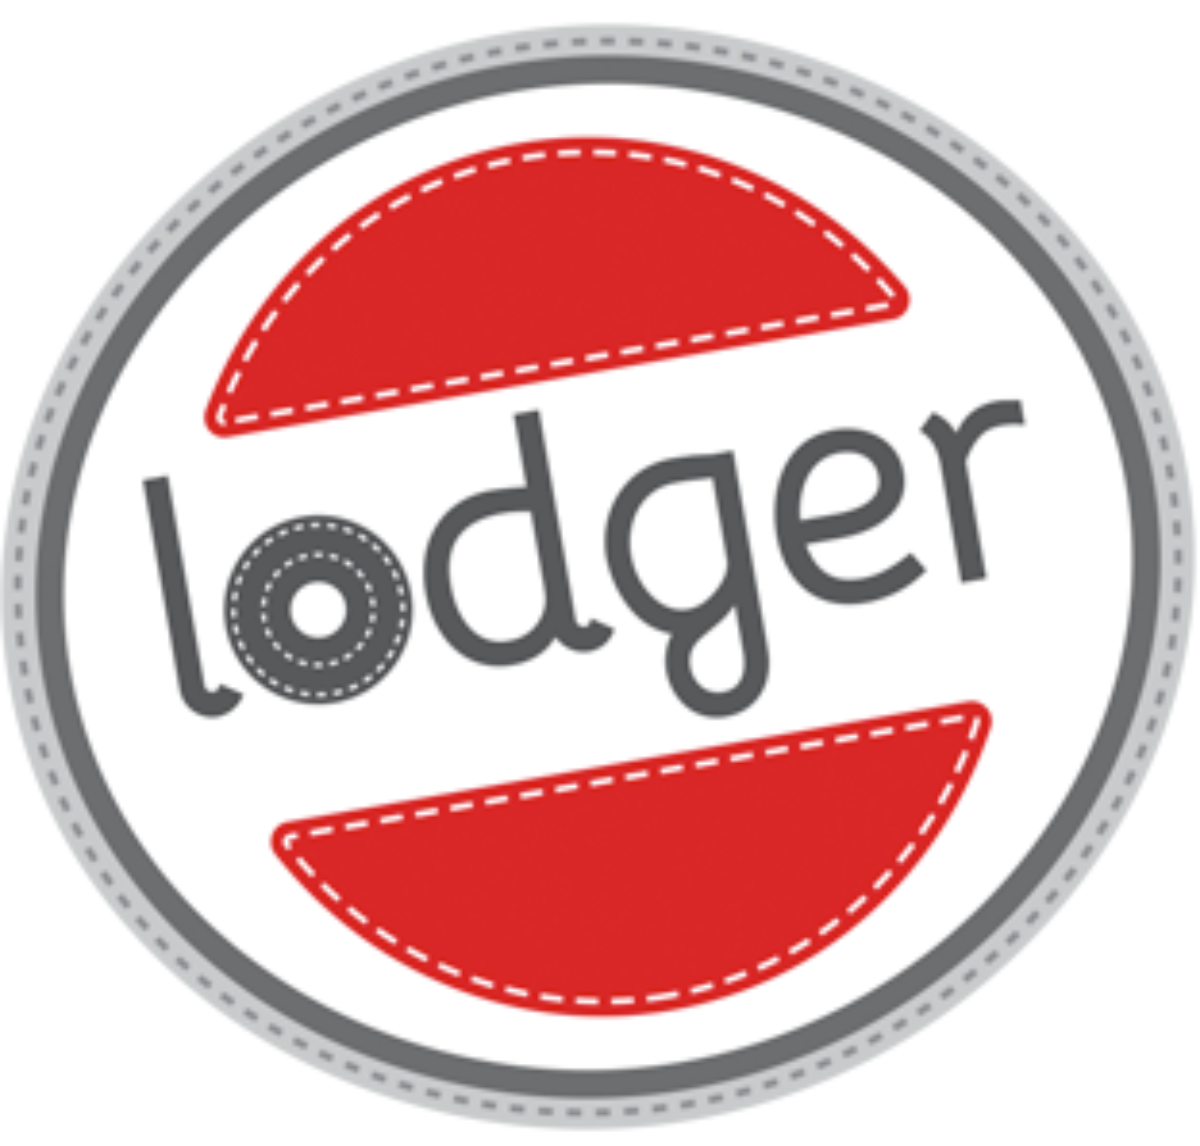 Lodger Woerden